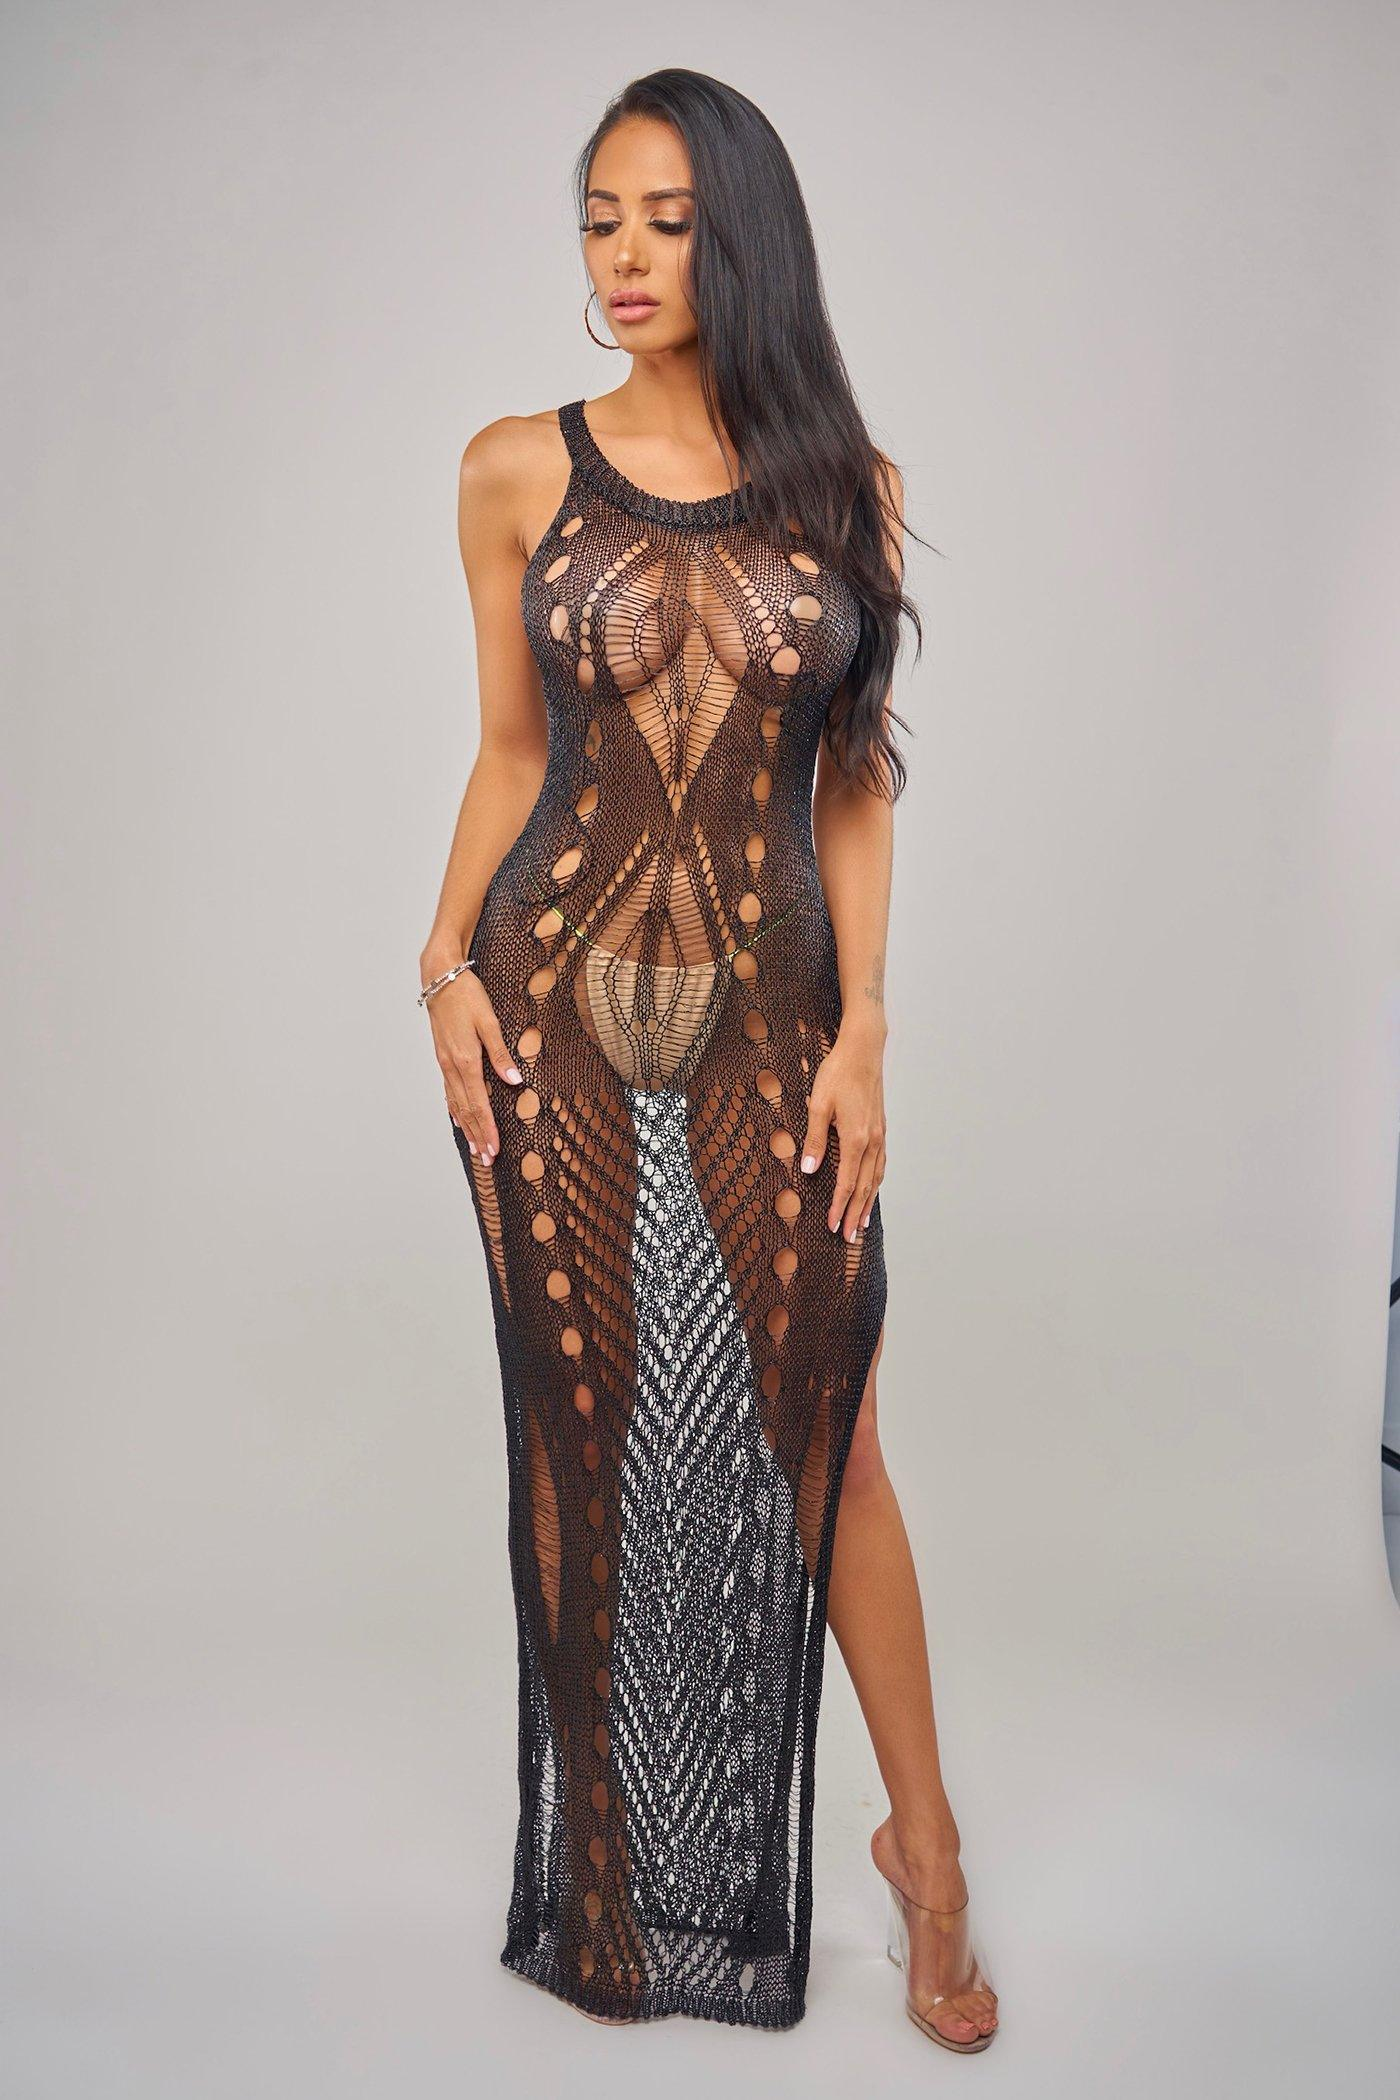 JOELL COVERUP -BLACK Beachwear Lotus Couture Miami